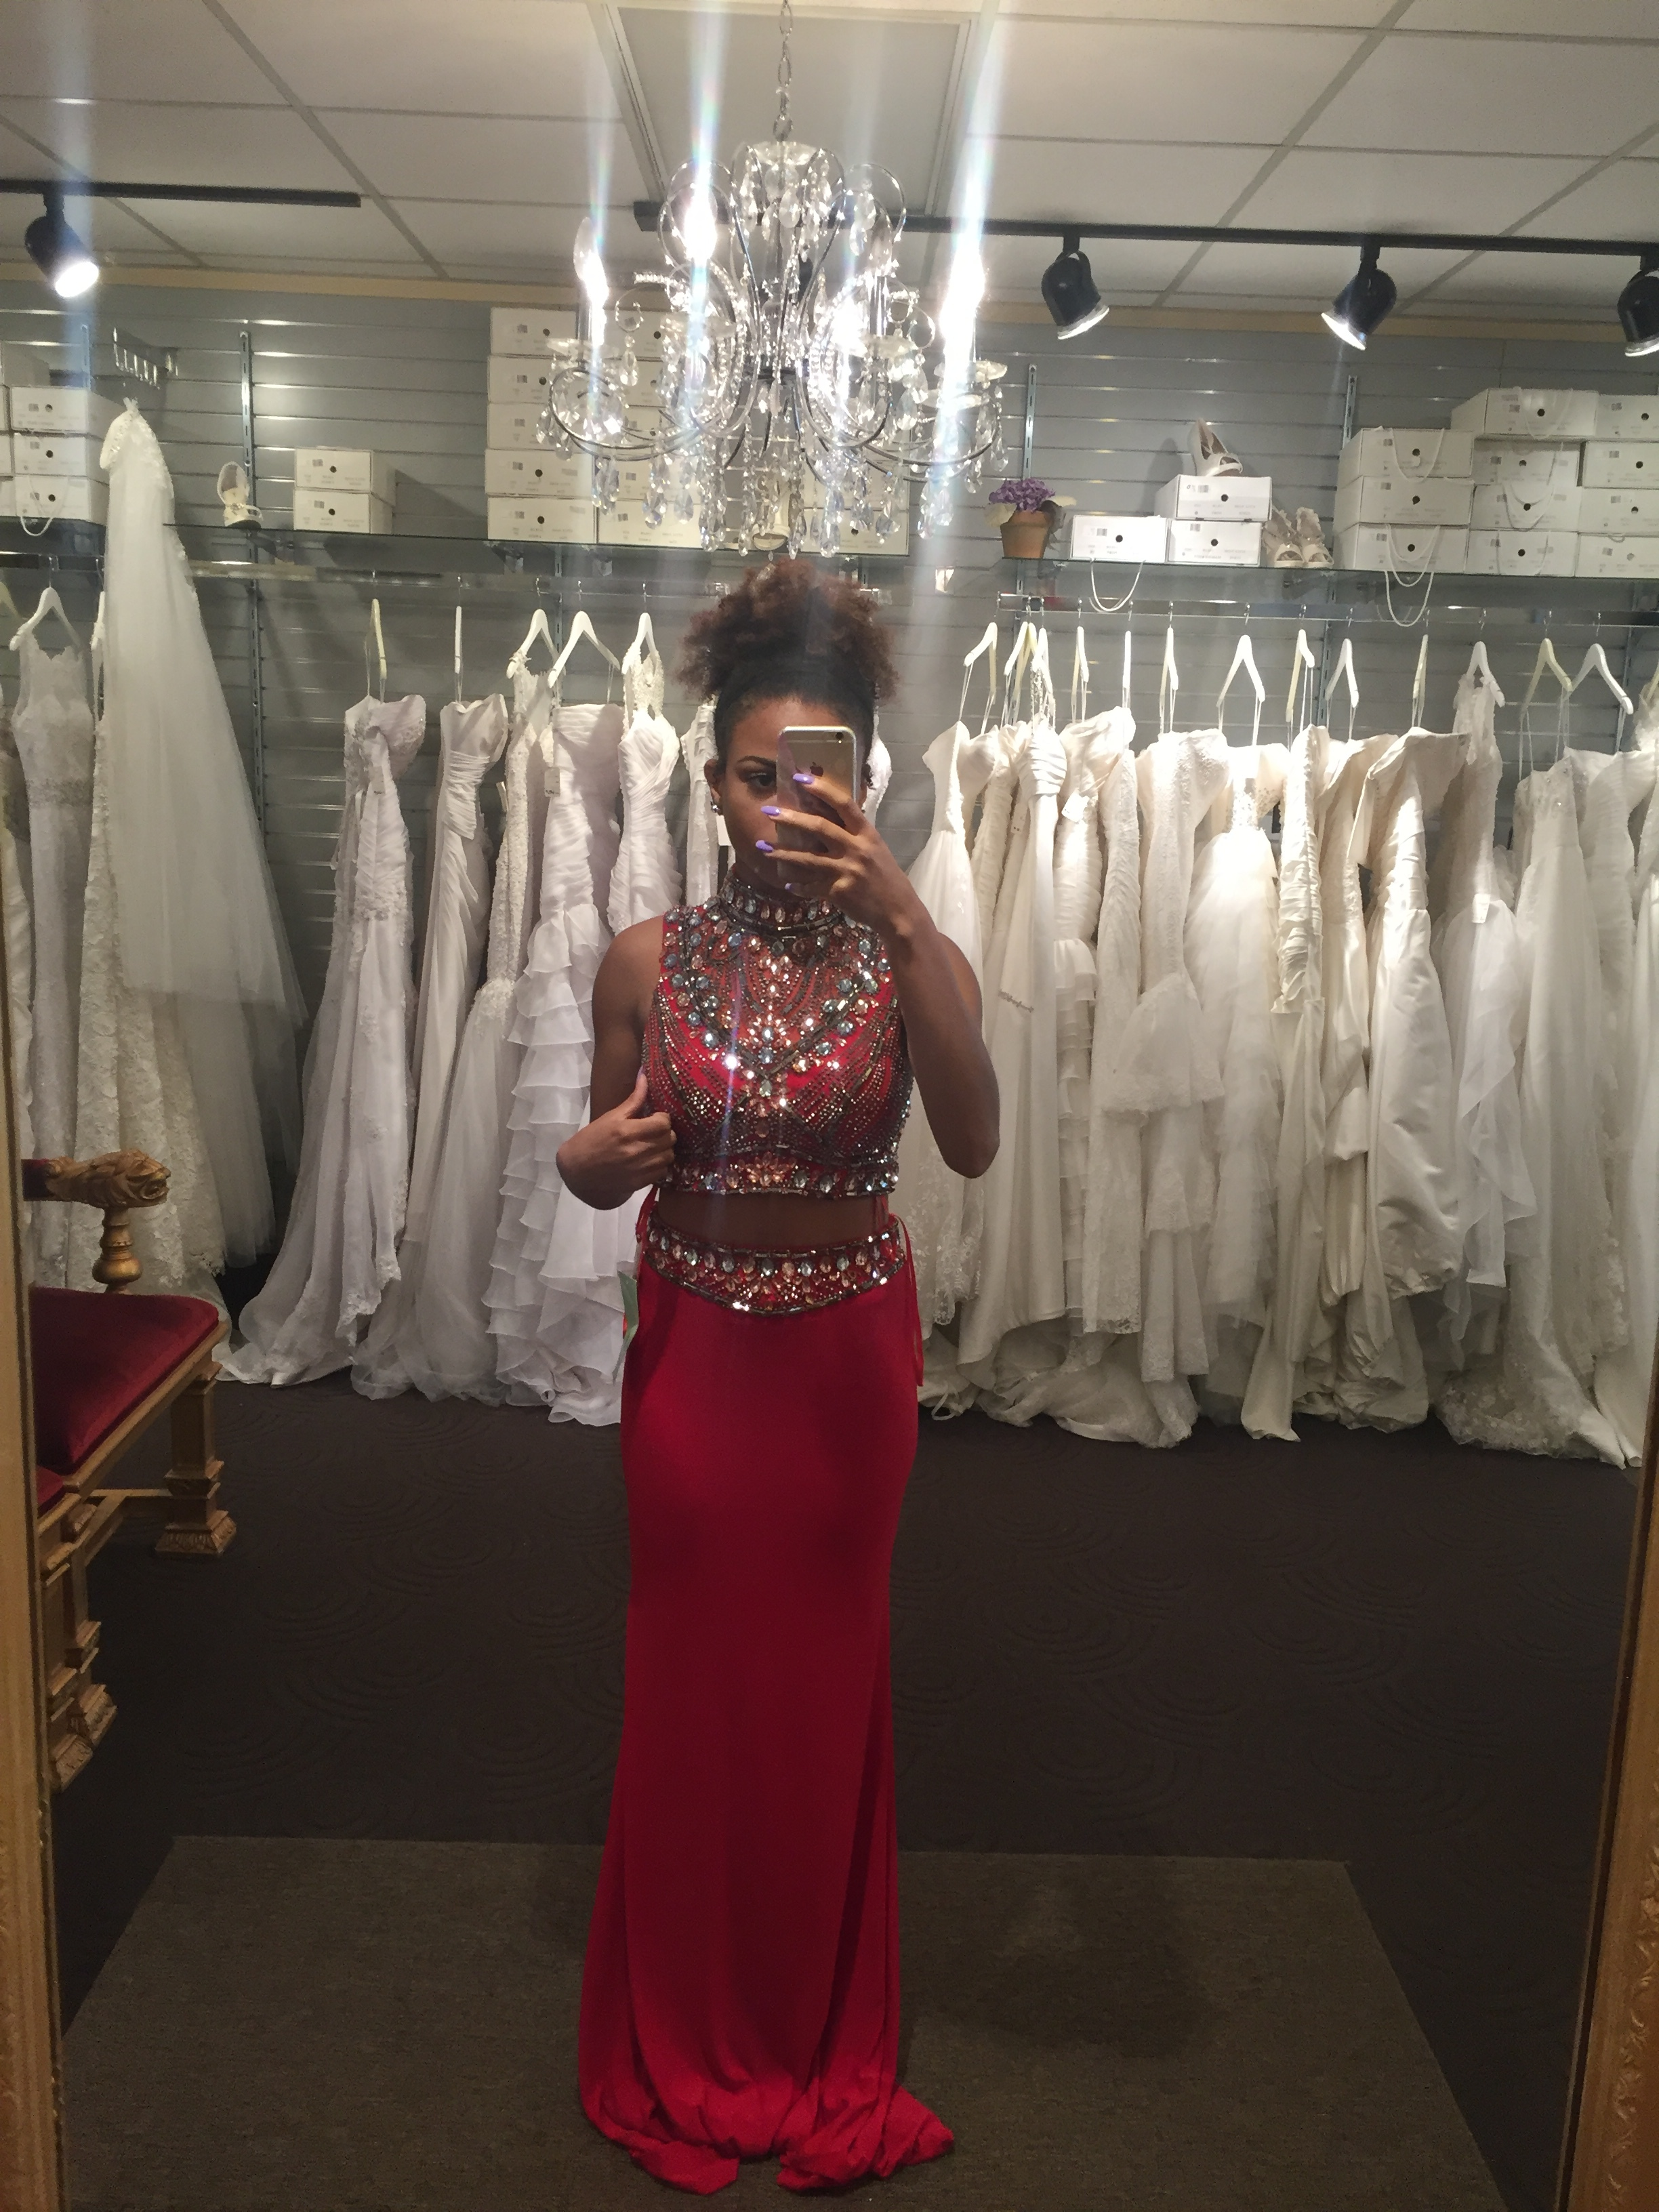 Loanablesprom Dress Rental Located In Long Beach Ca